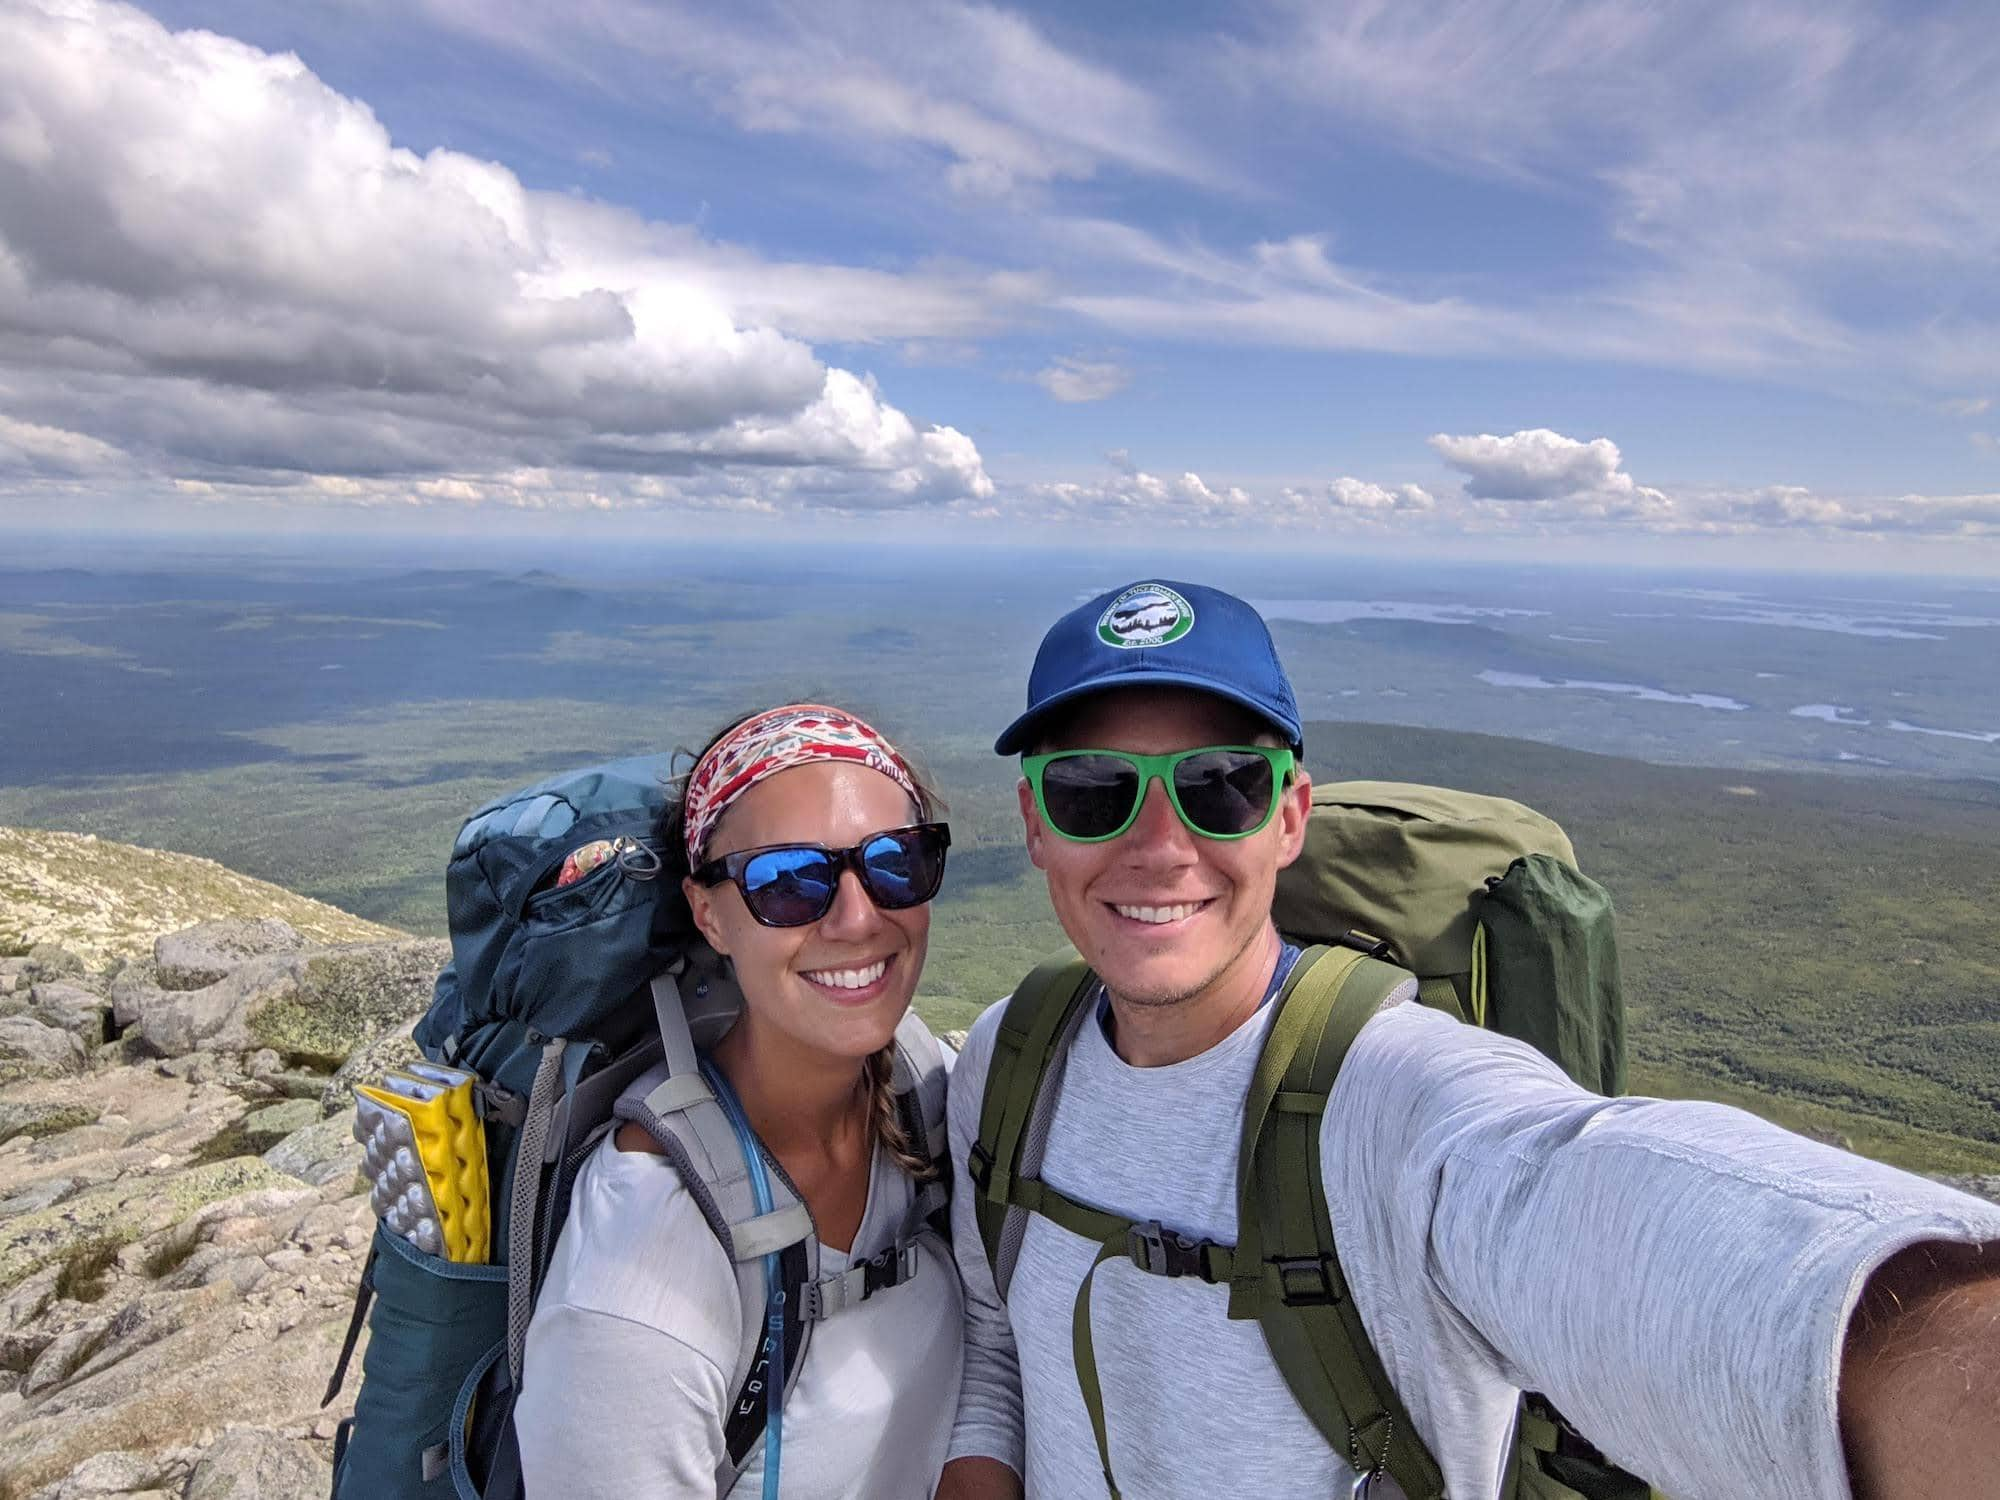 How to plan the best 3-day backpacking trip to Baxter State Park in Maine that includes hiking Katahdin and Knife's Edge.